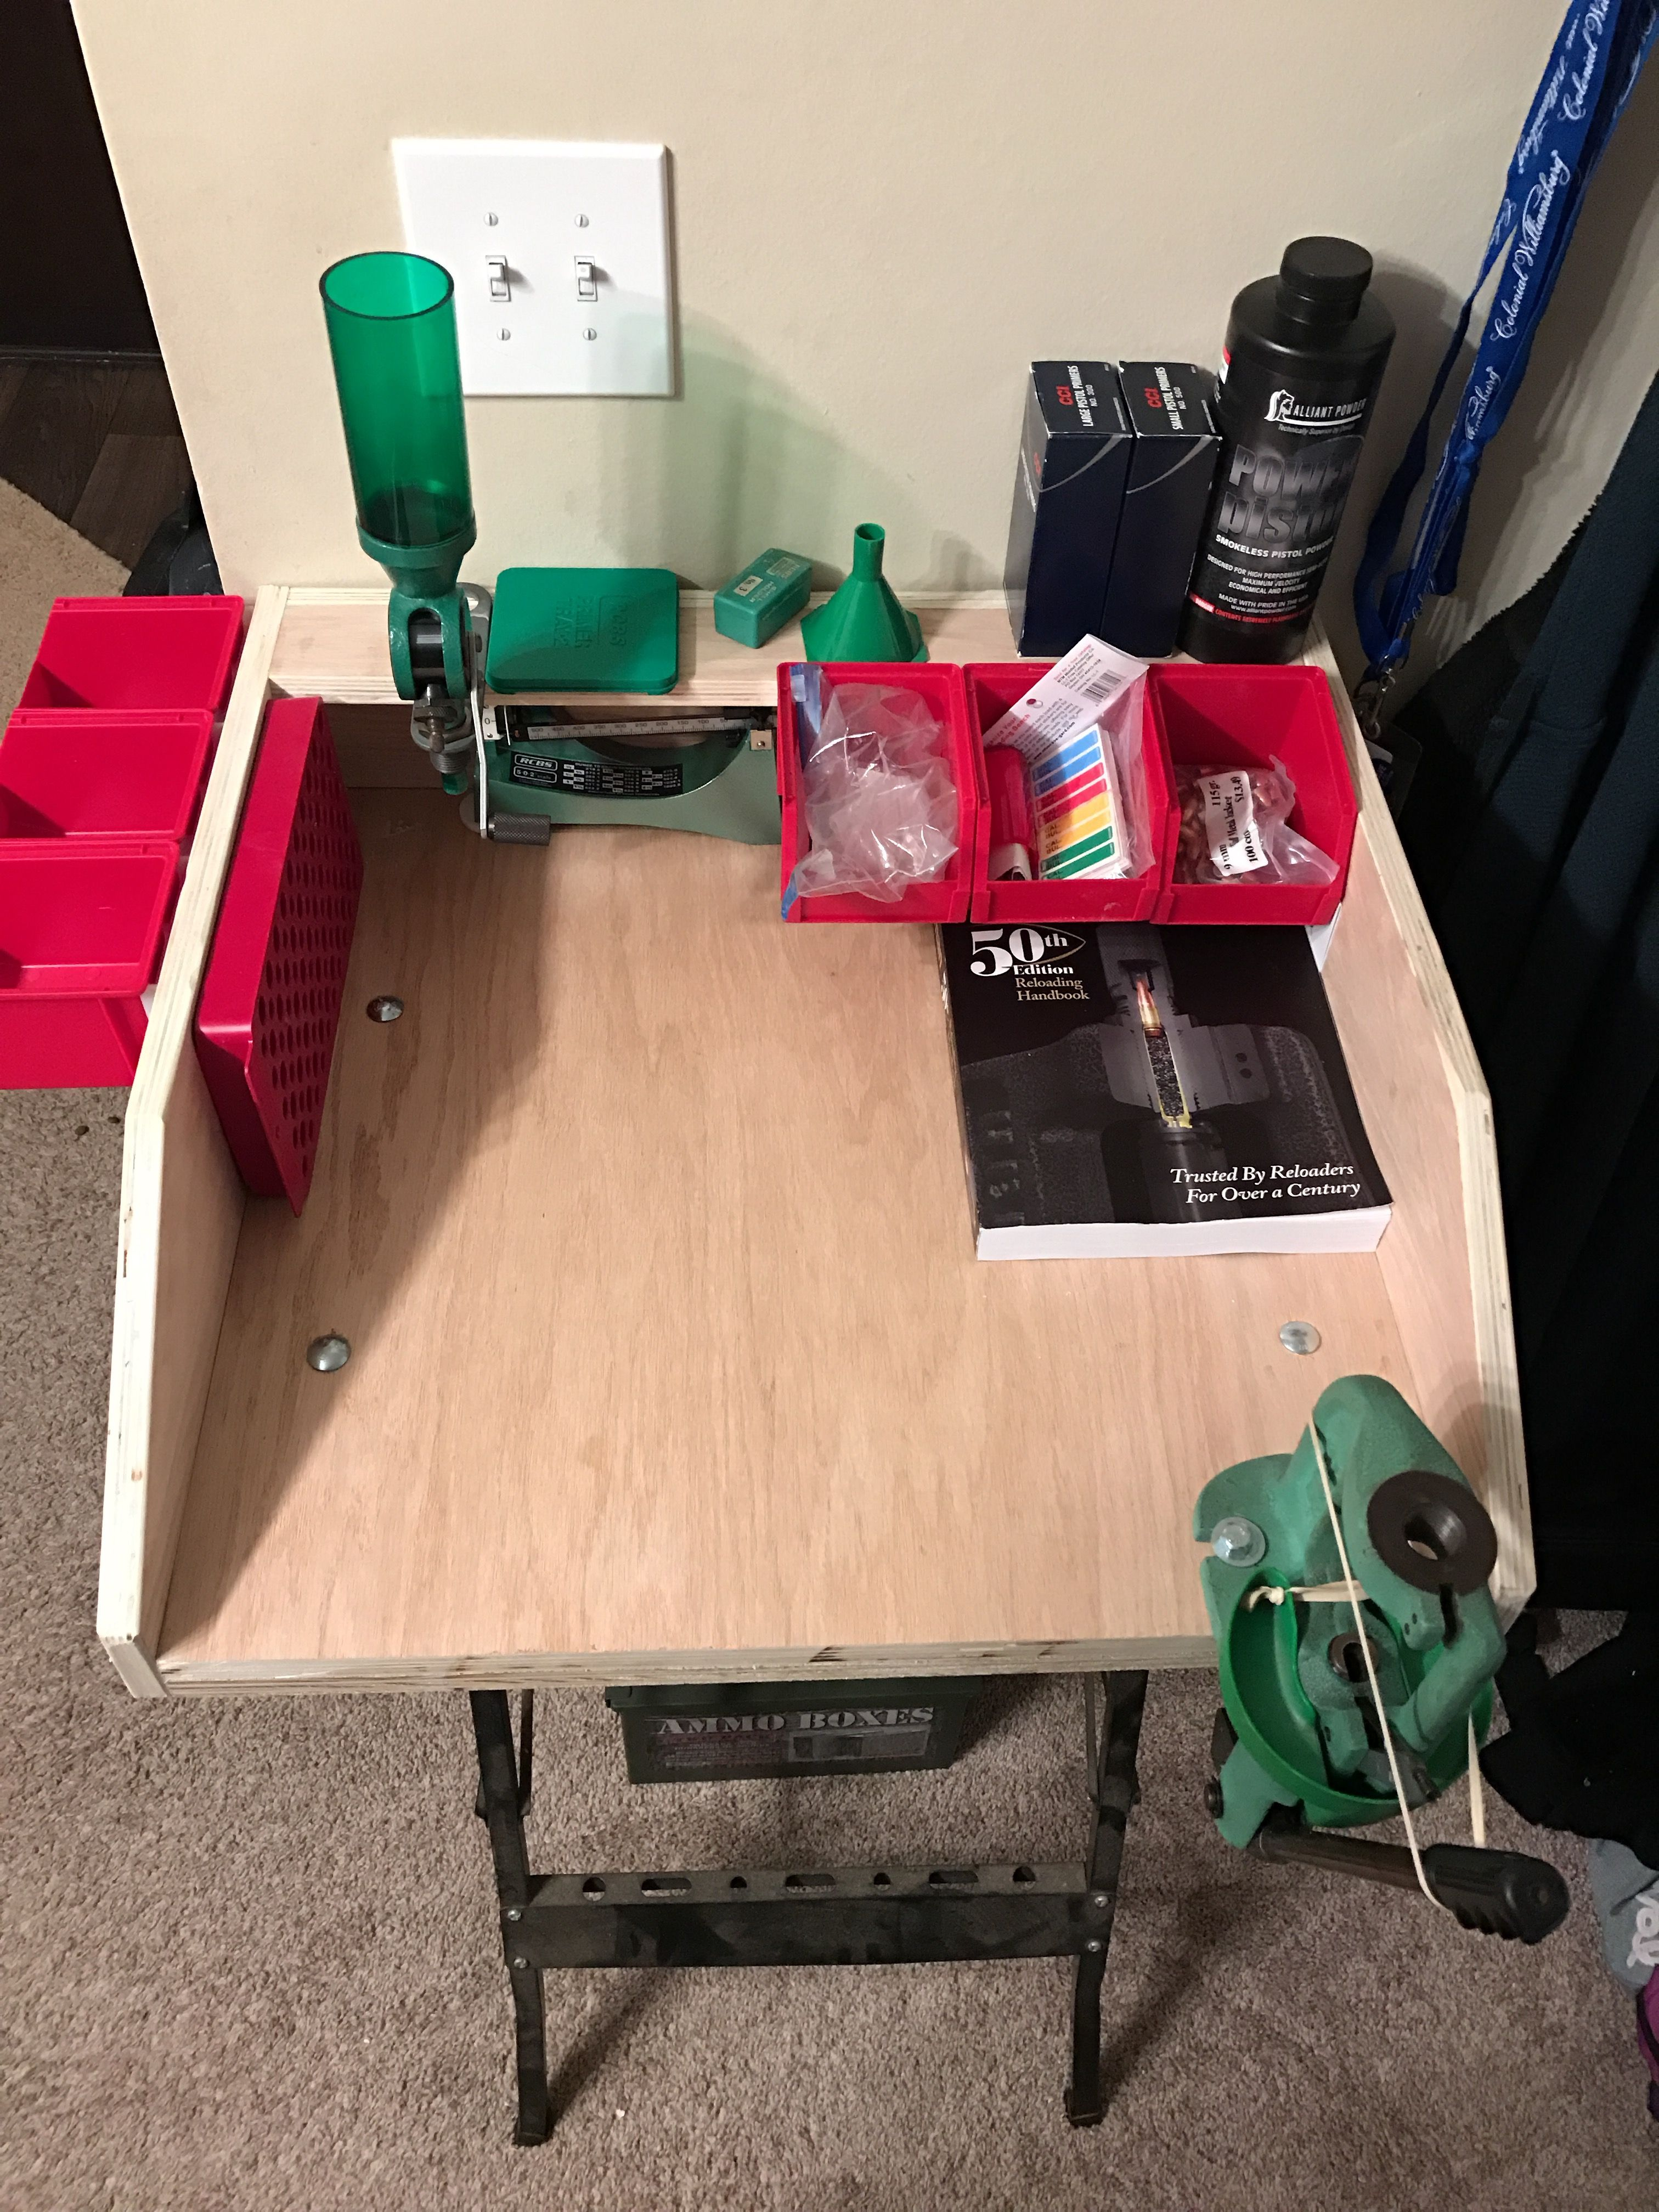 design free portable reloading home bench plans ideas